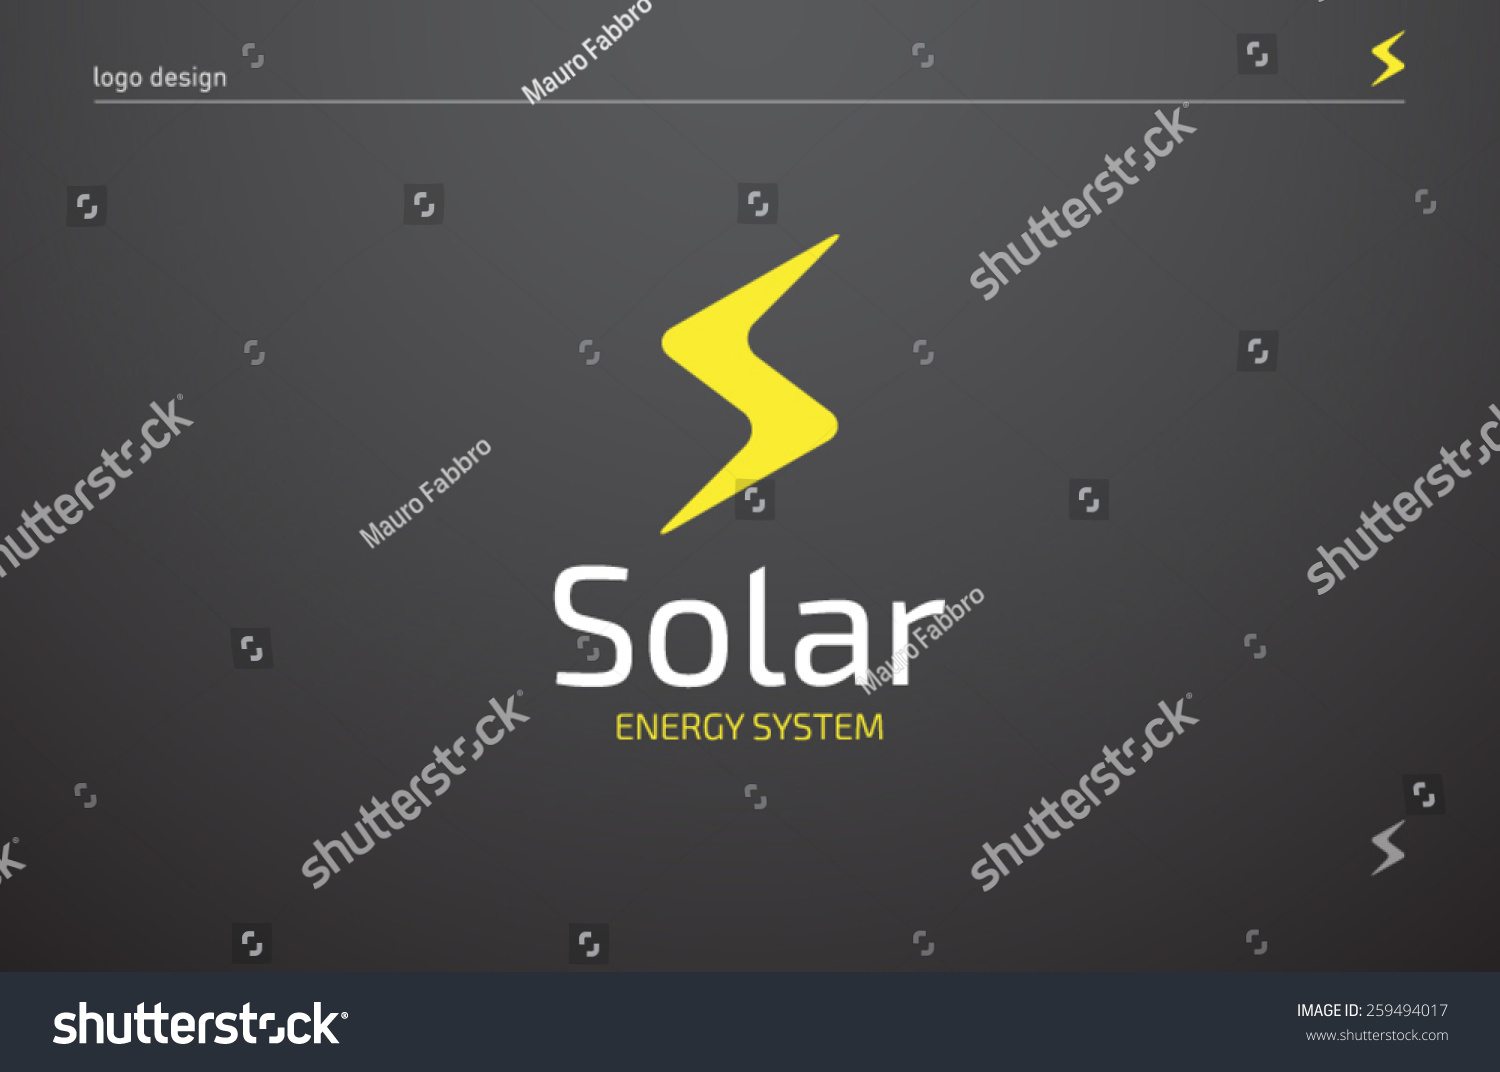 logo template solar panels technology company stock vector 259494017 shutterstock. Black Bedroom Furniture Sets. Home Design Ideas